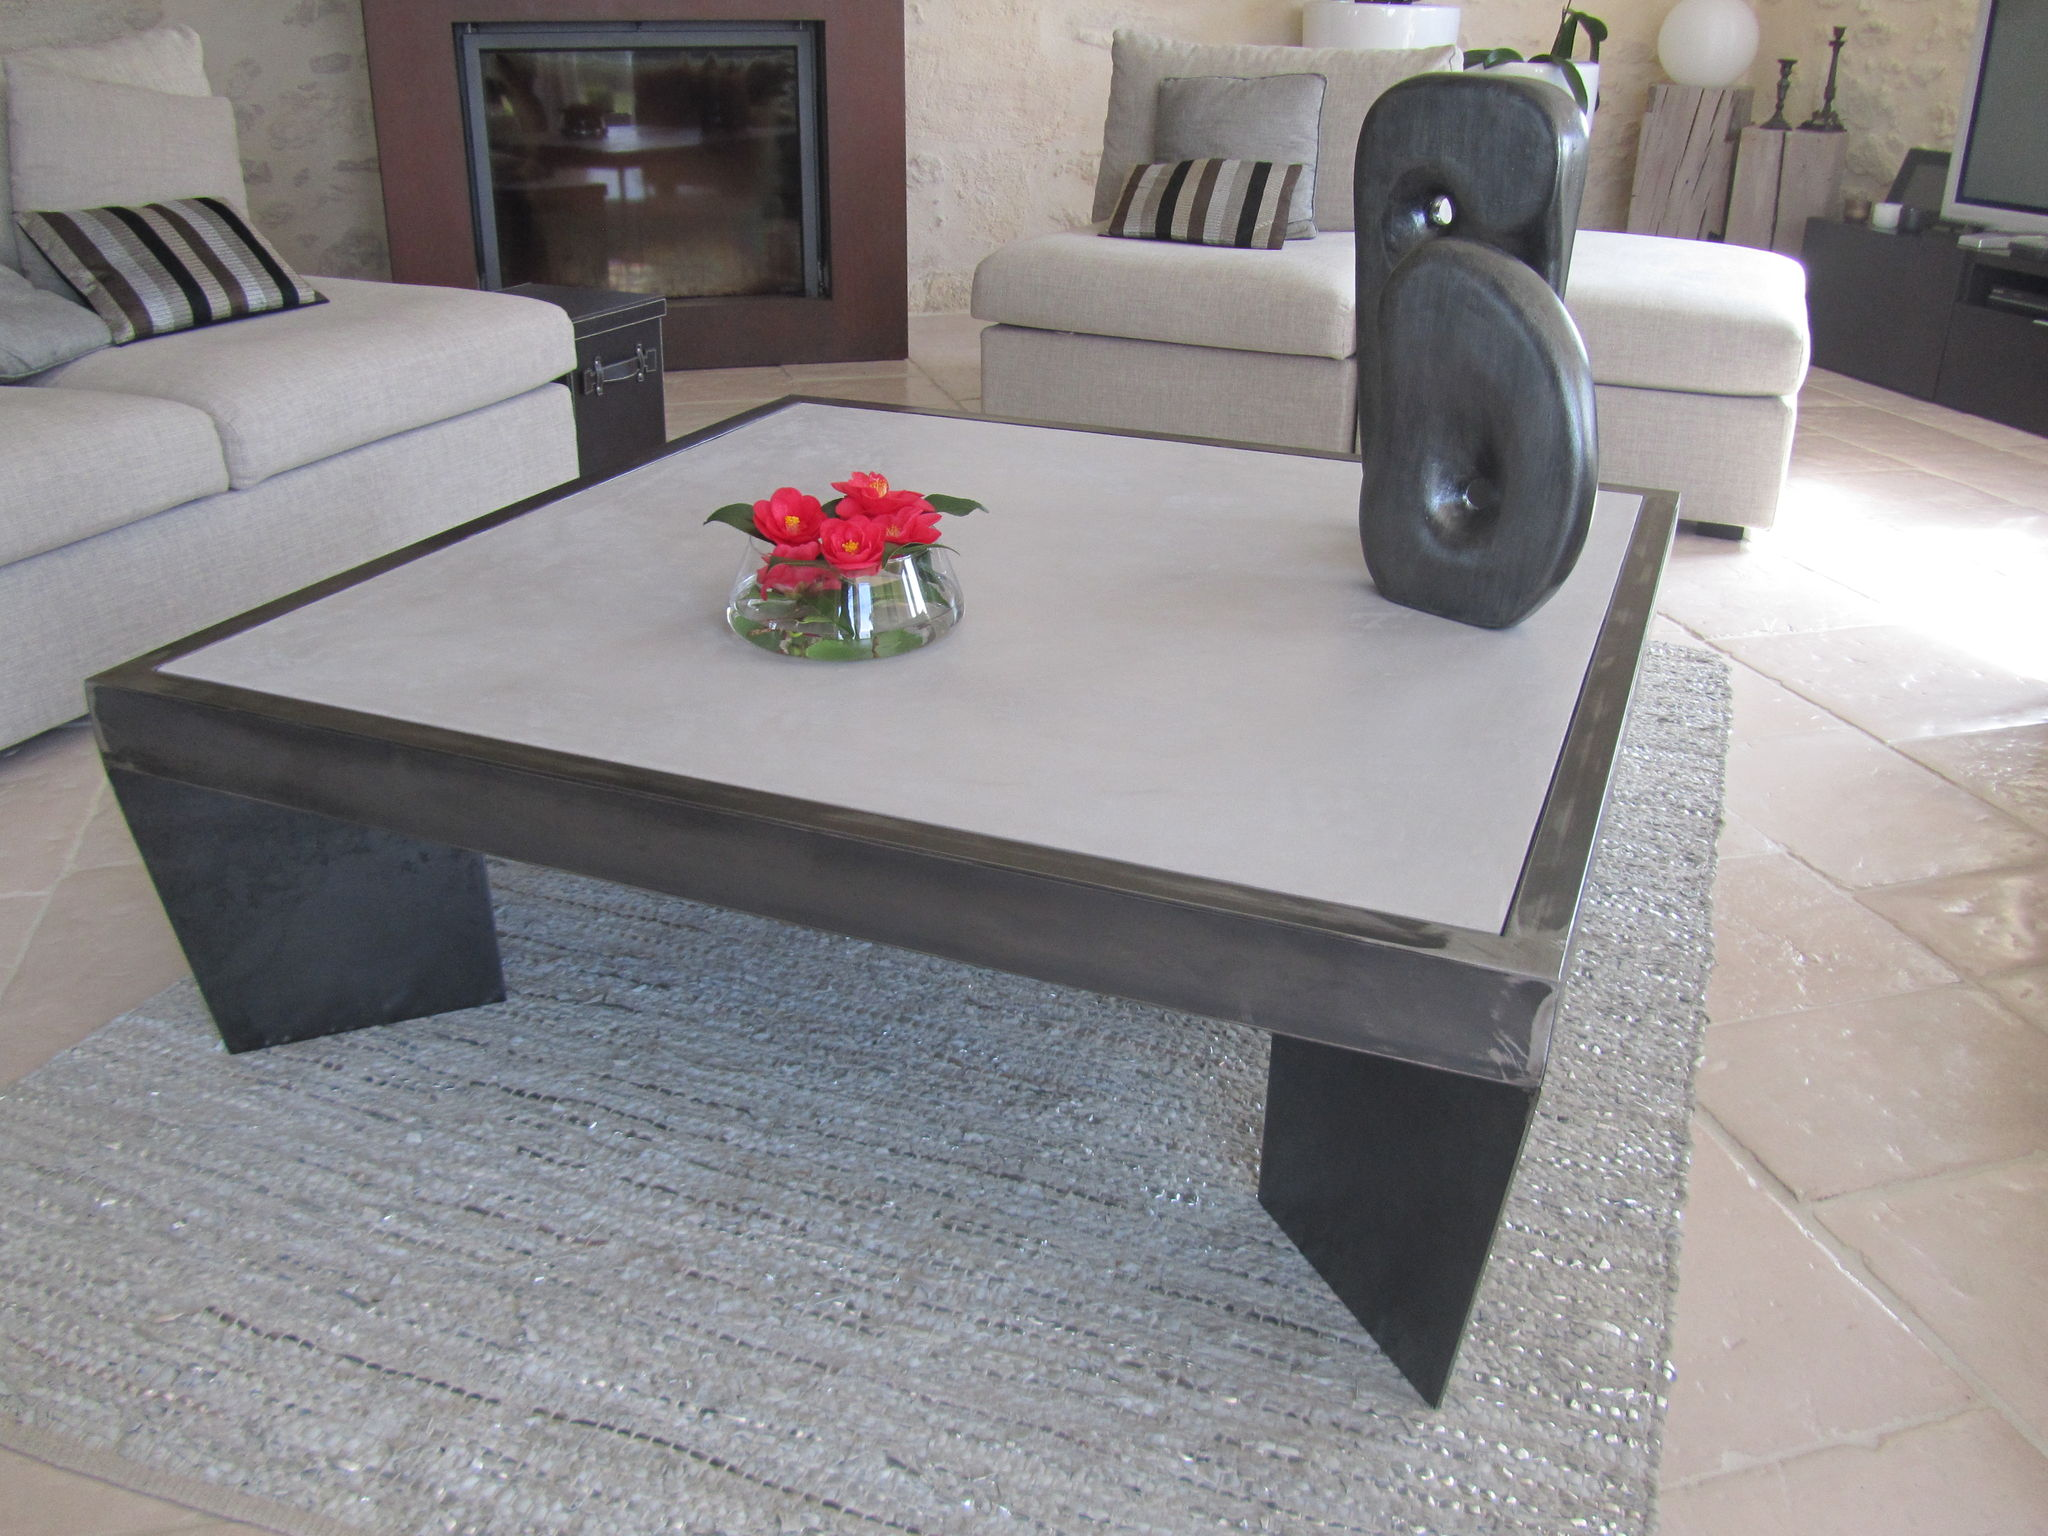 Table basse de salon en beton for Table de jardin en beton cire